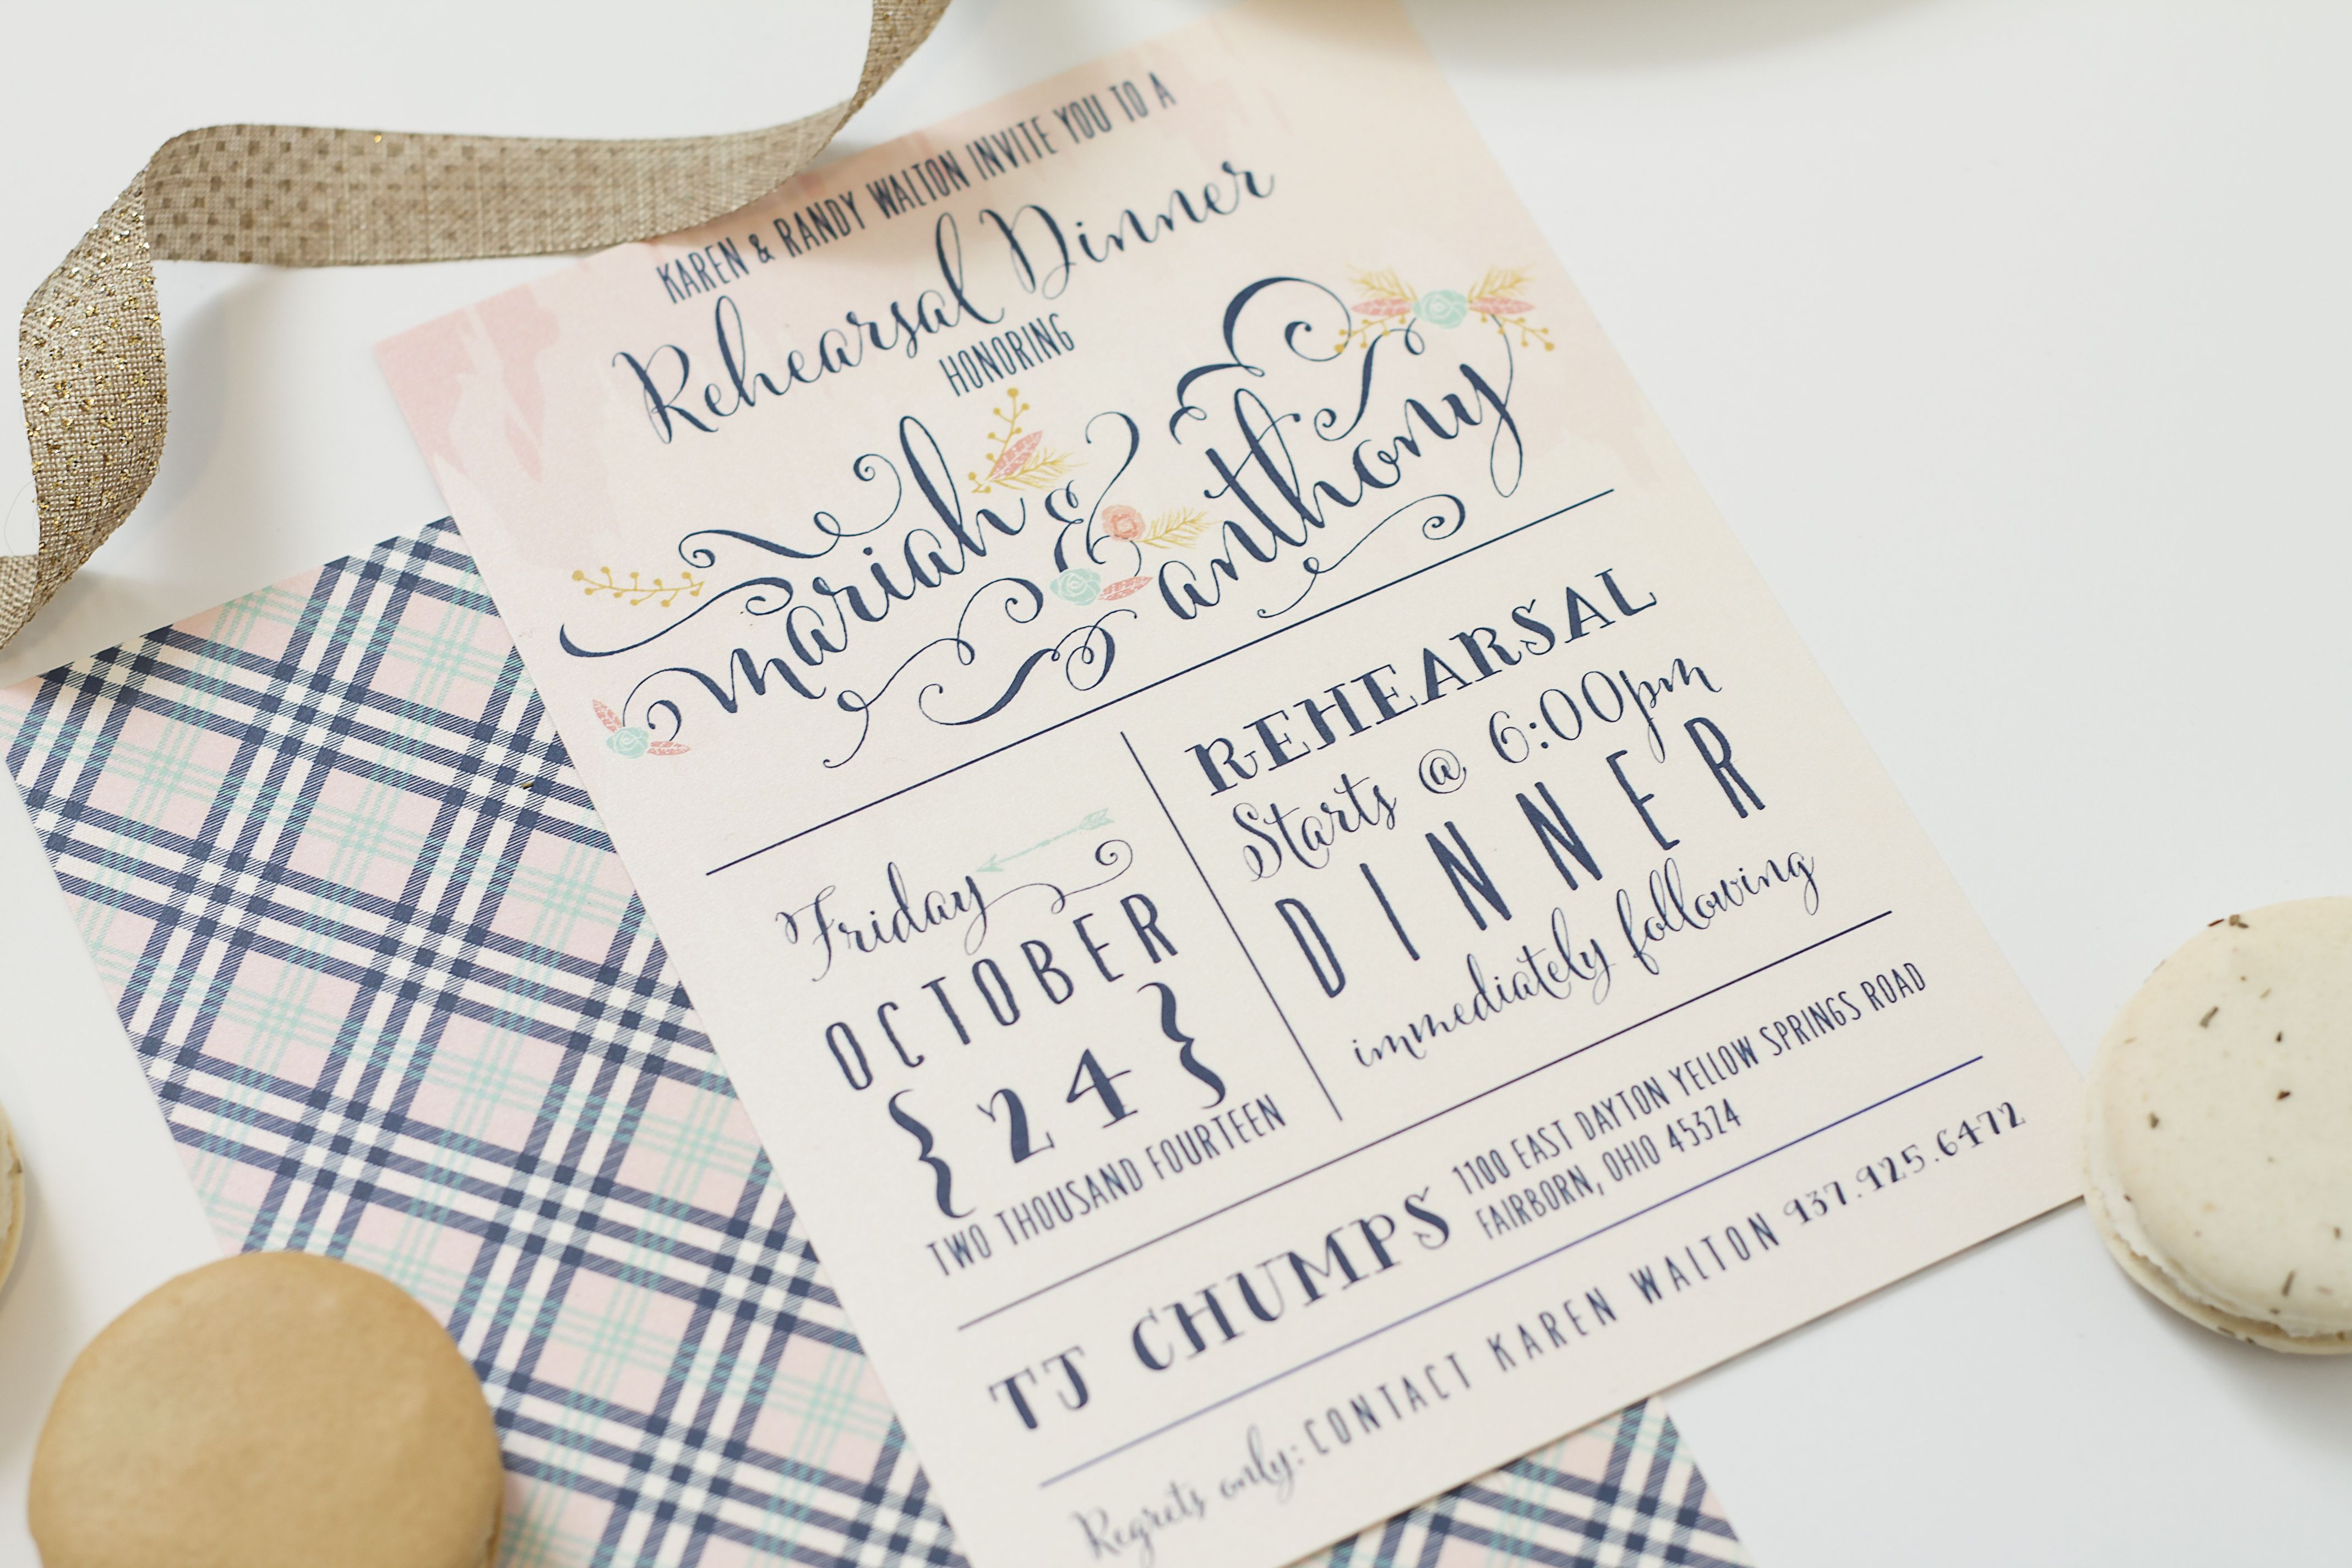 Rustic Chic Antler Deer Invitation Watercolor Style With Flourishes